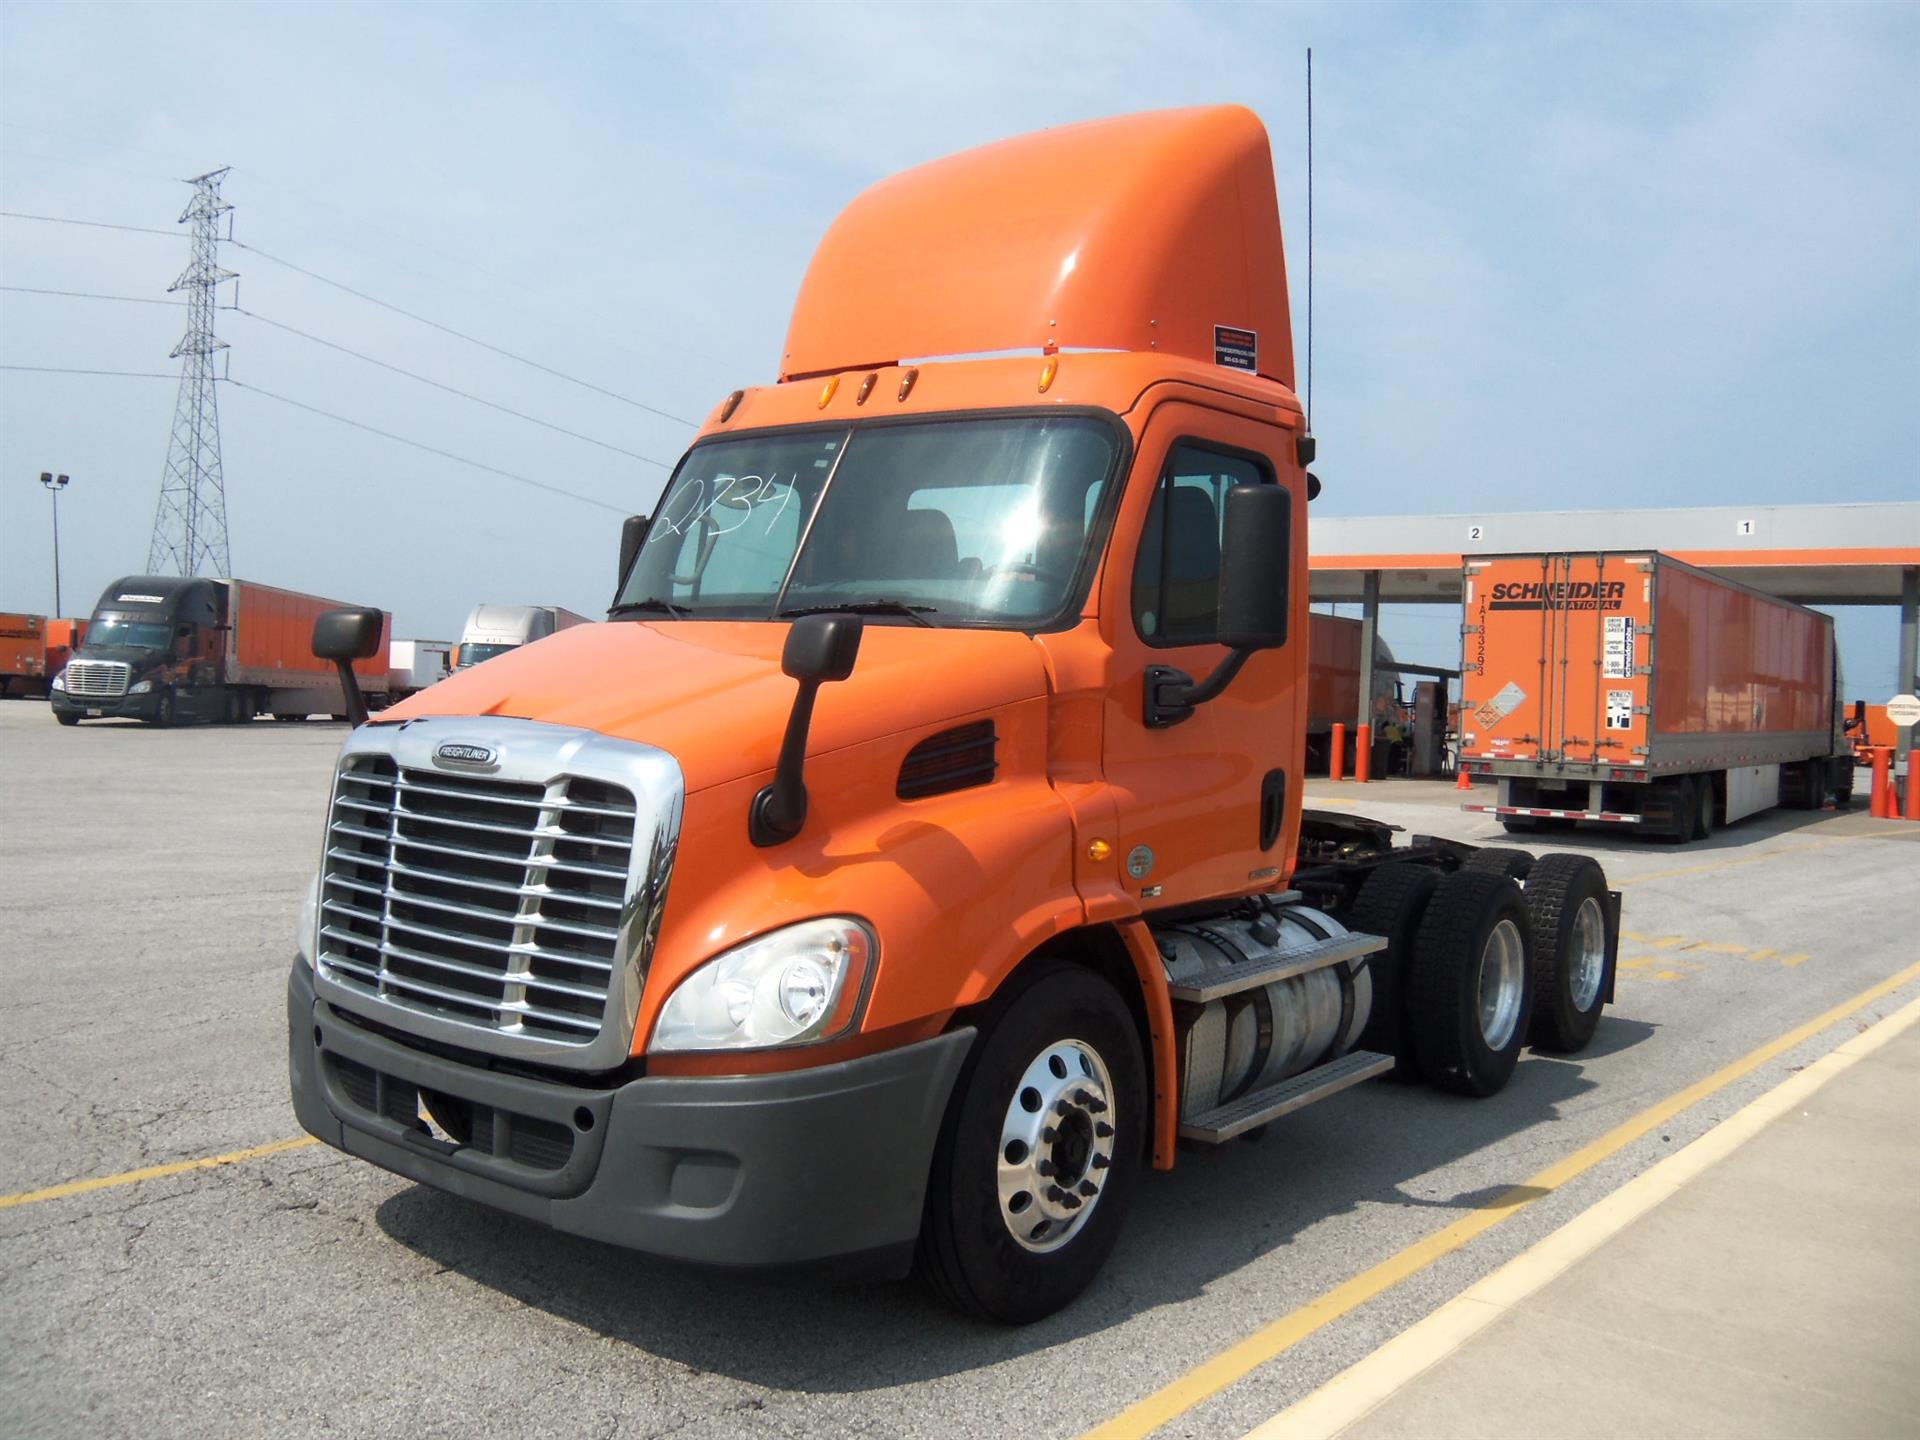 USED 2011 FREIGHTLINER CASCADIA DAYCAB TRUCK #75380